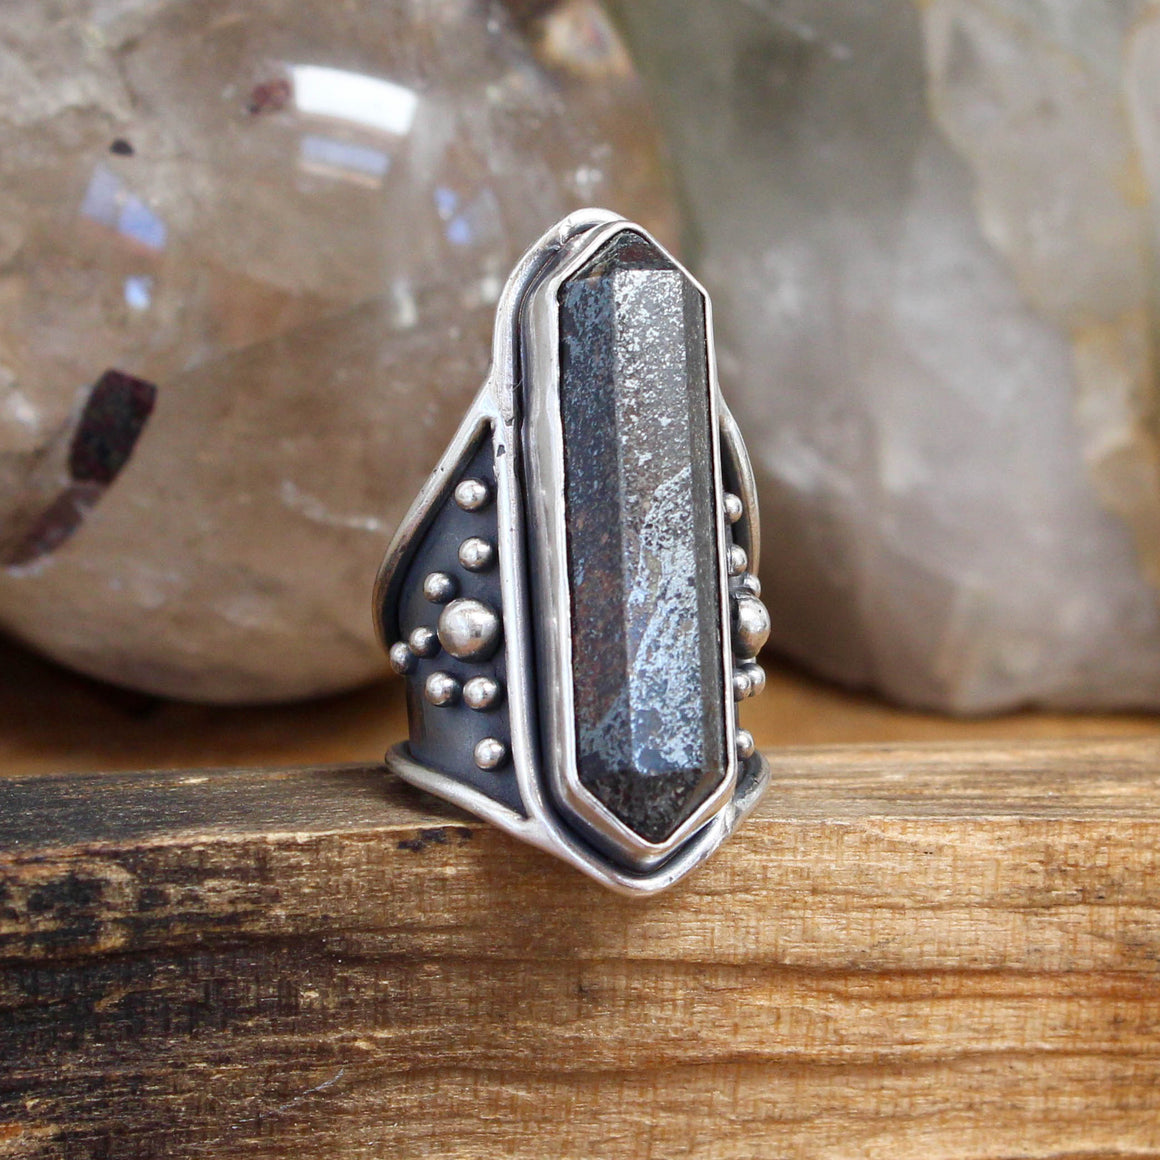 Amplifier Half Shield Ring // Hematite - Size 7 - acid-queen-jewelry, [product_type] - acid-queen-jewelry, Acid Queen Jewelry - acid-queen-jewelry,  Acid Queen Jewelry - acid-queen-jewelry